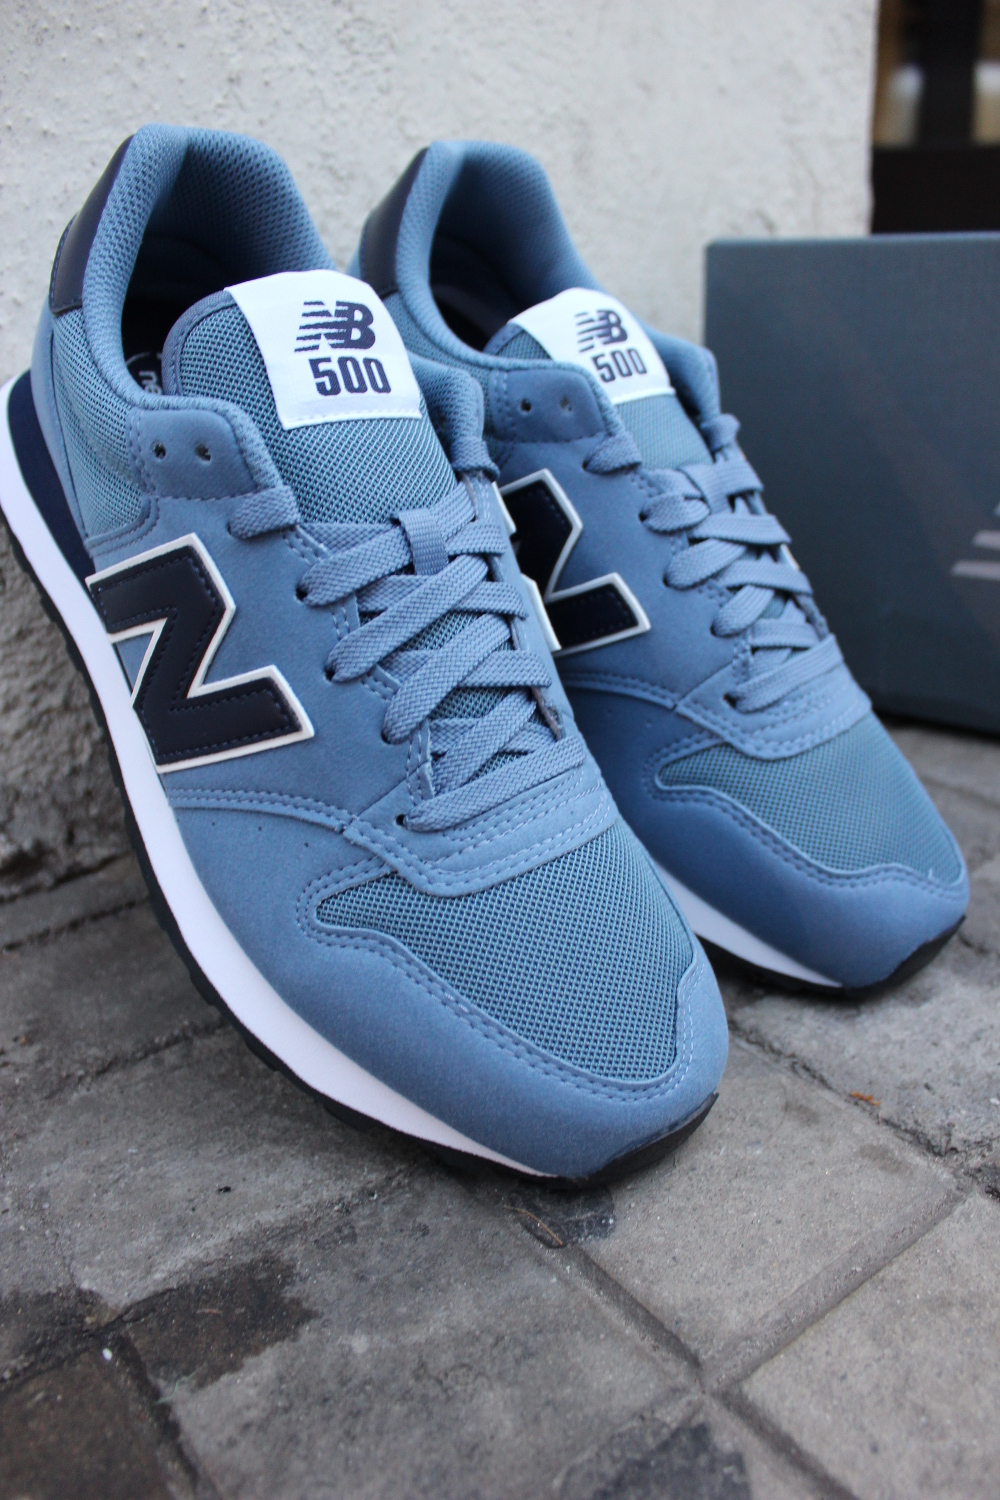 Tennis Sneakers Sportive Lifestyle Ginnastica New Balance Scarpe Gm wvtXEE